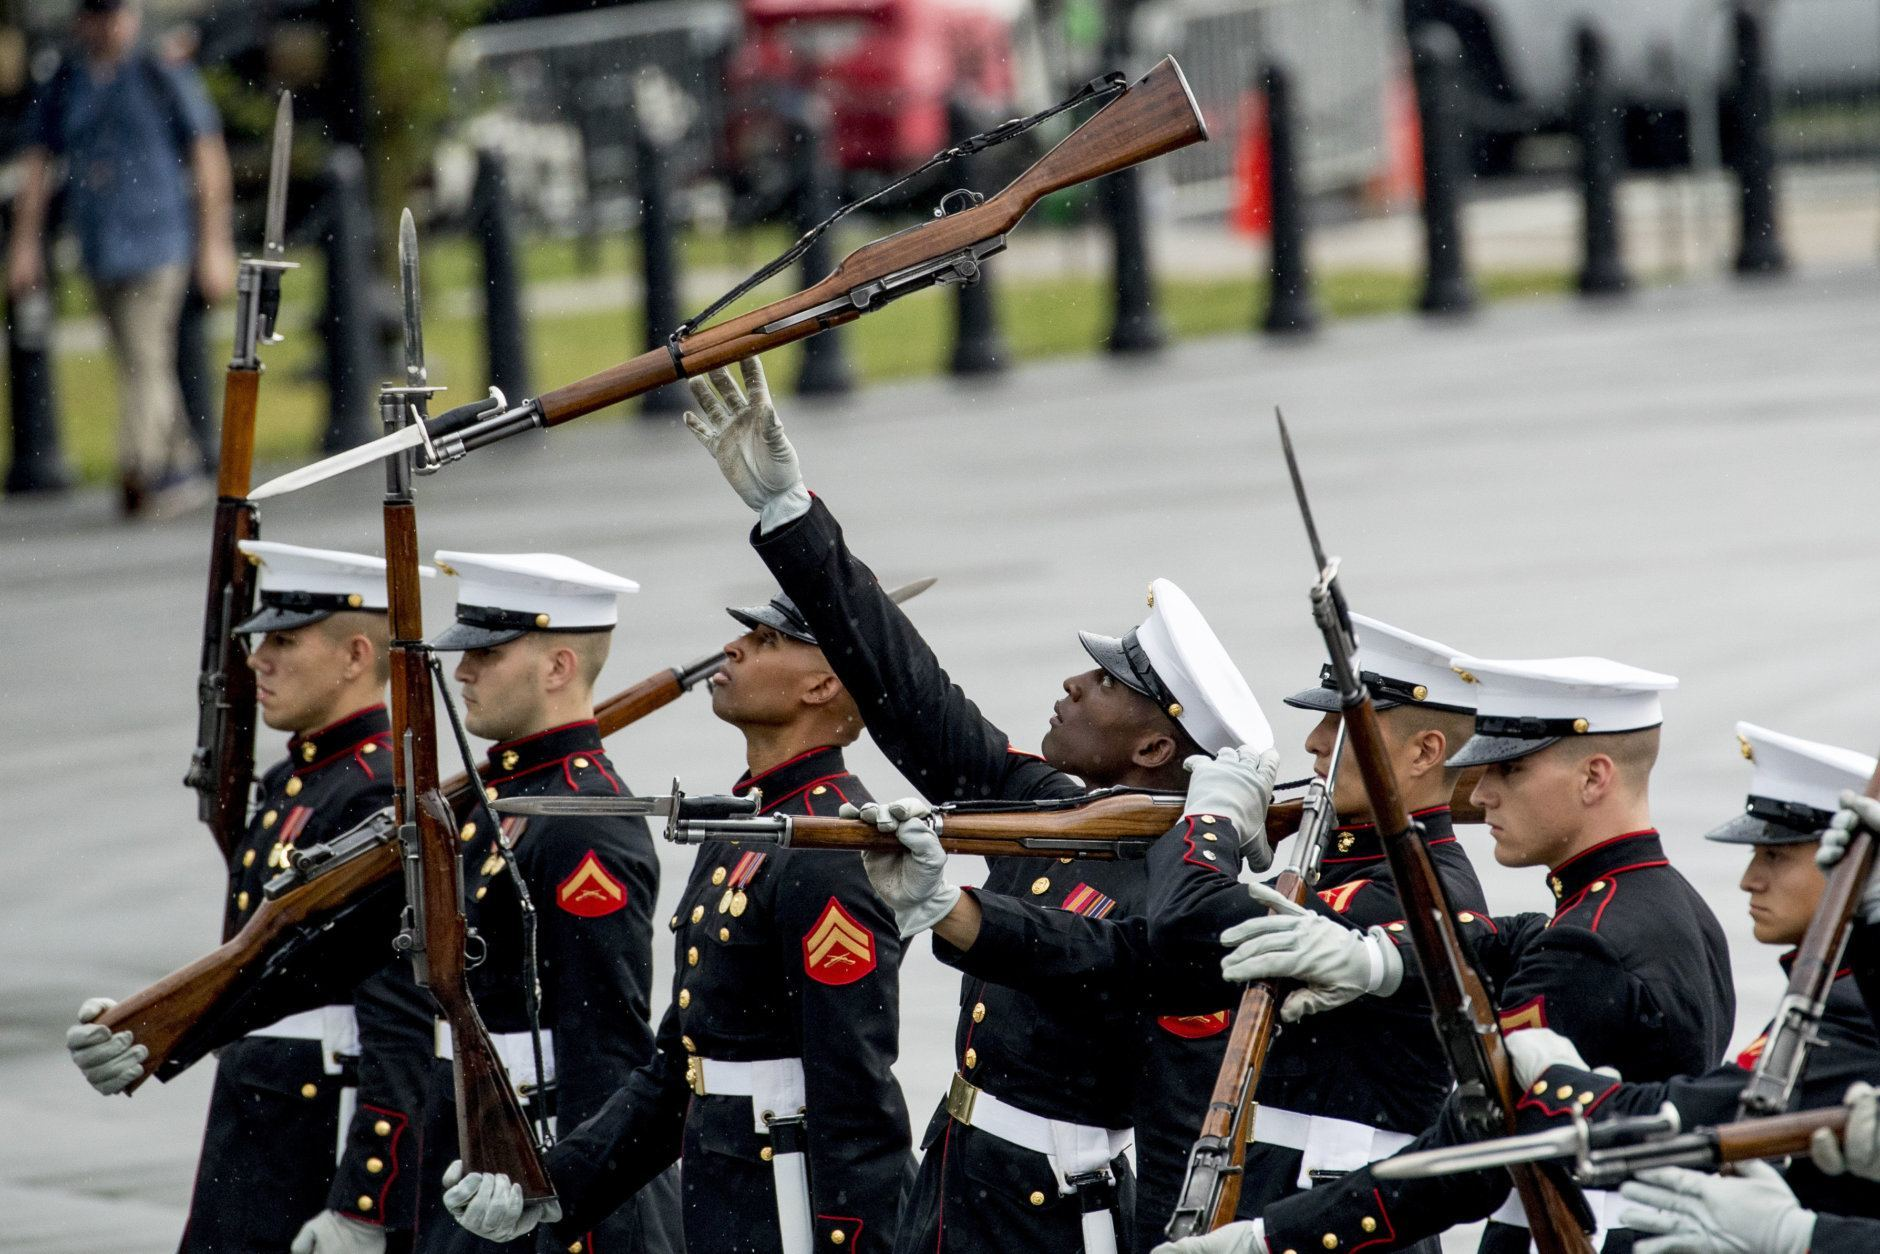 """The Marine Silent Drill Team Performs at President Donald Trump's 'Salute to America' event honoring service branches on Independence Day, Thursday, July 4, 2019, in Washington. President Donald Trump is promising military tanks along with """"Incredible Flyovers & biggest ever Fireworks!"""" for the Fourth of July. (AP Photo/Andrew Harnik)"""